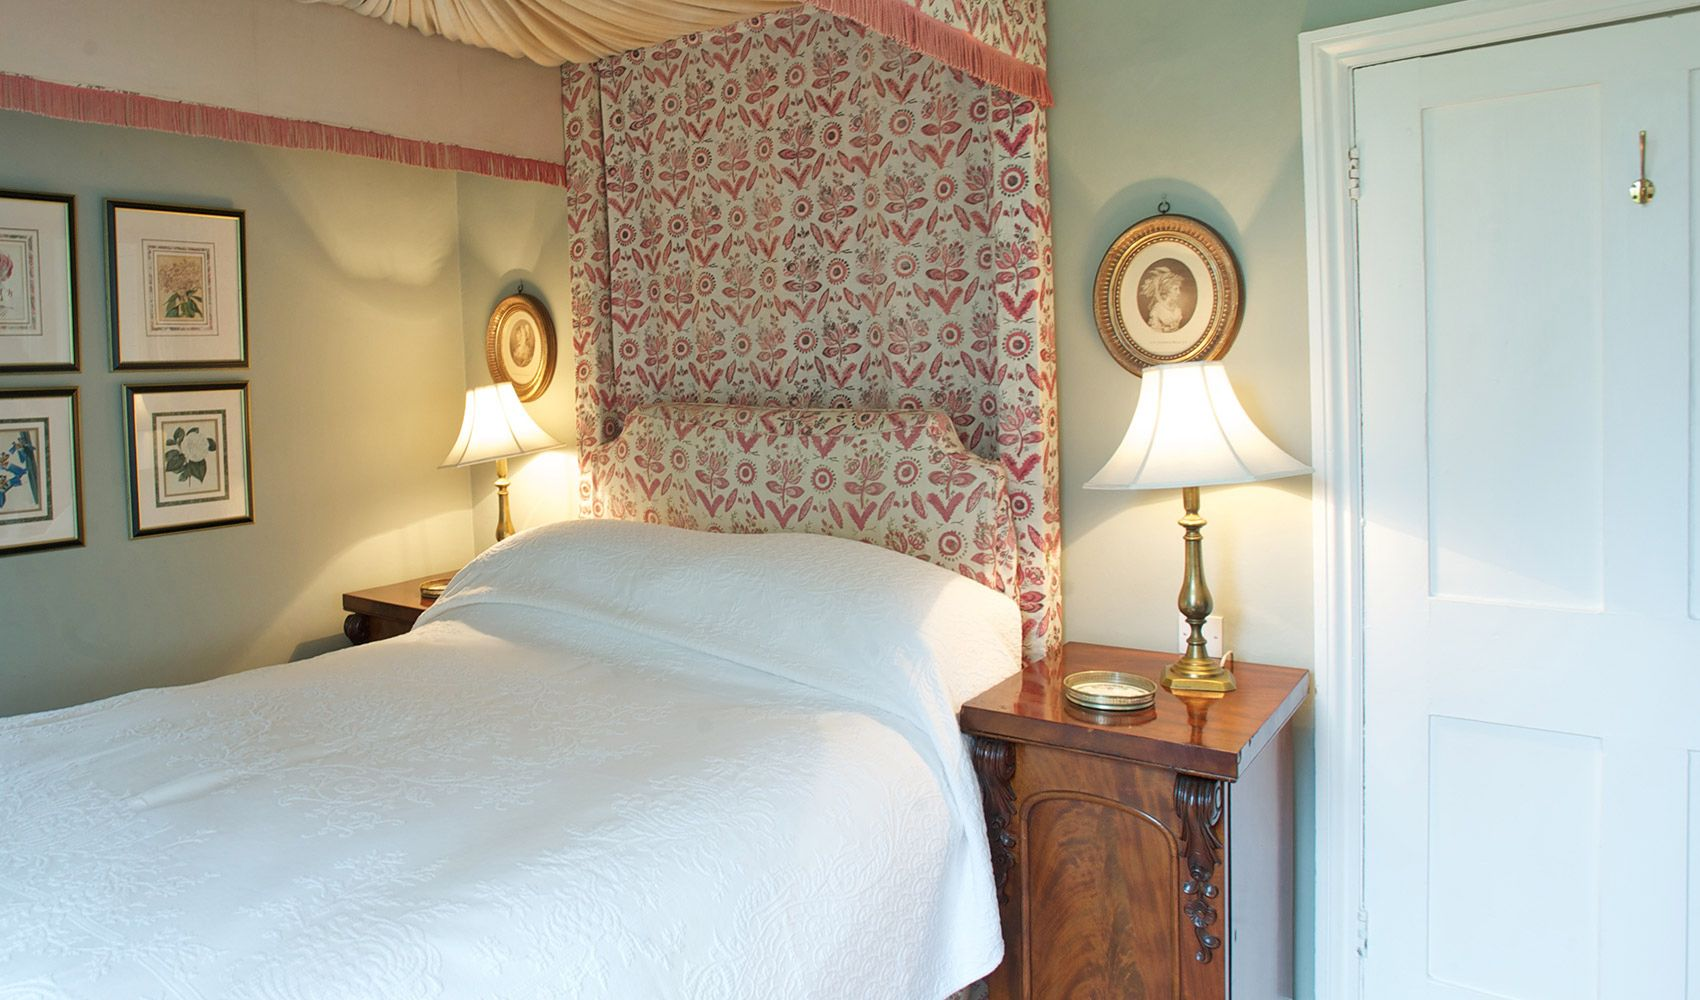 First floor: Double bedroom with an 18th century four-poster and hangings